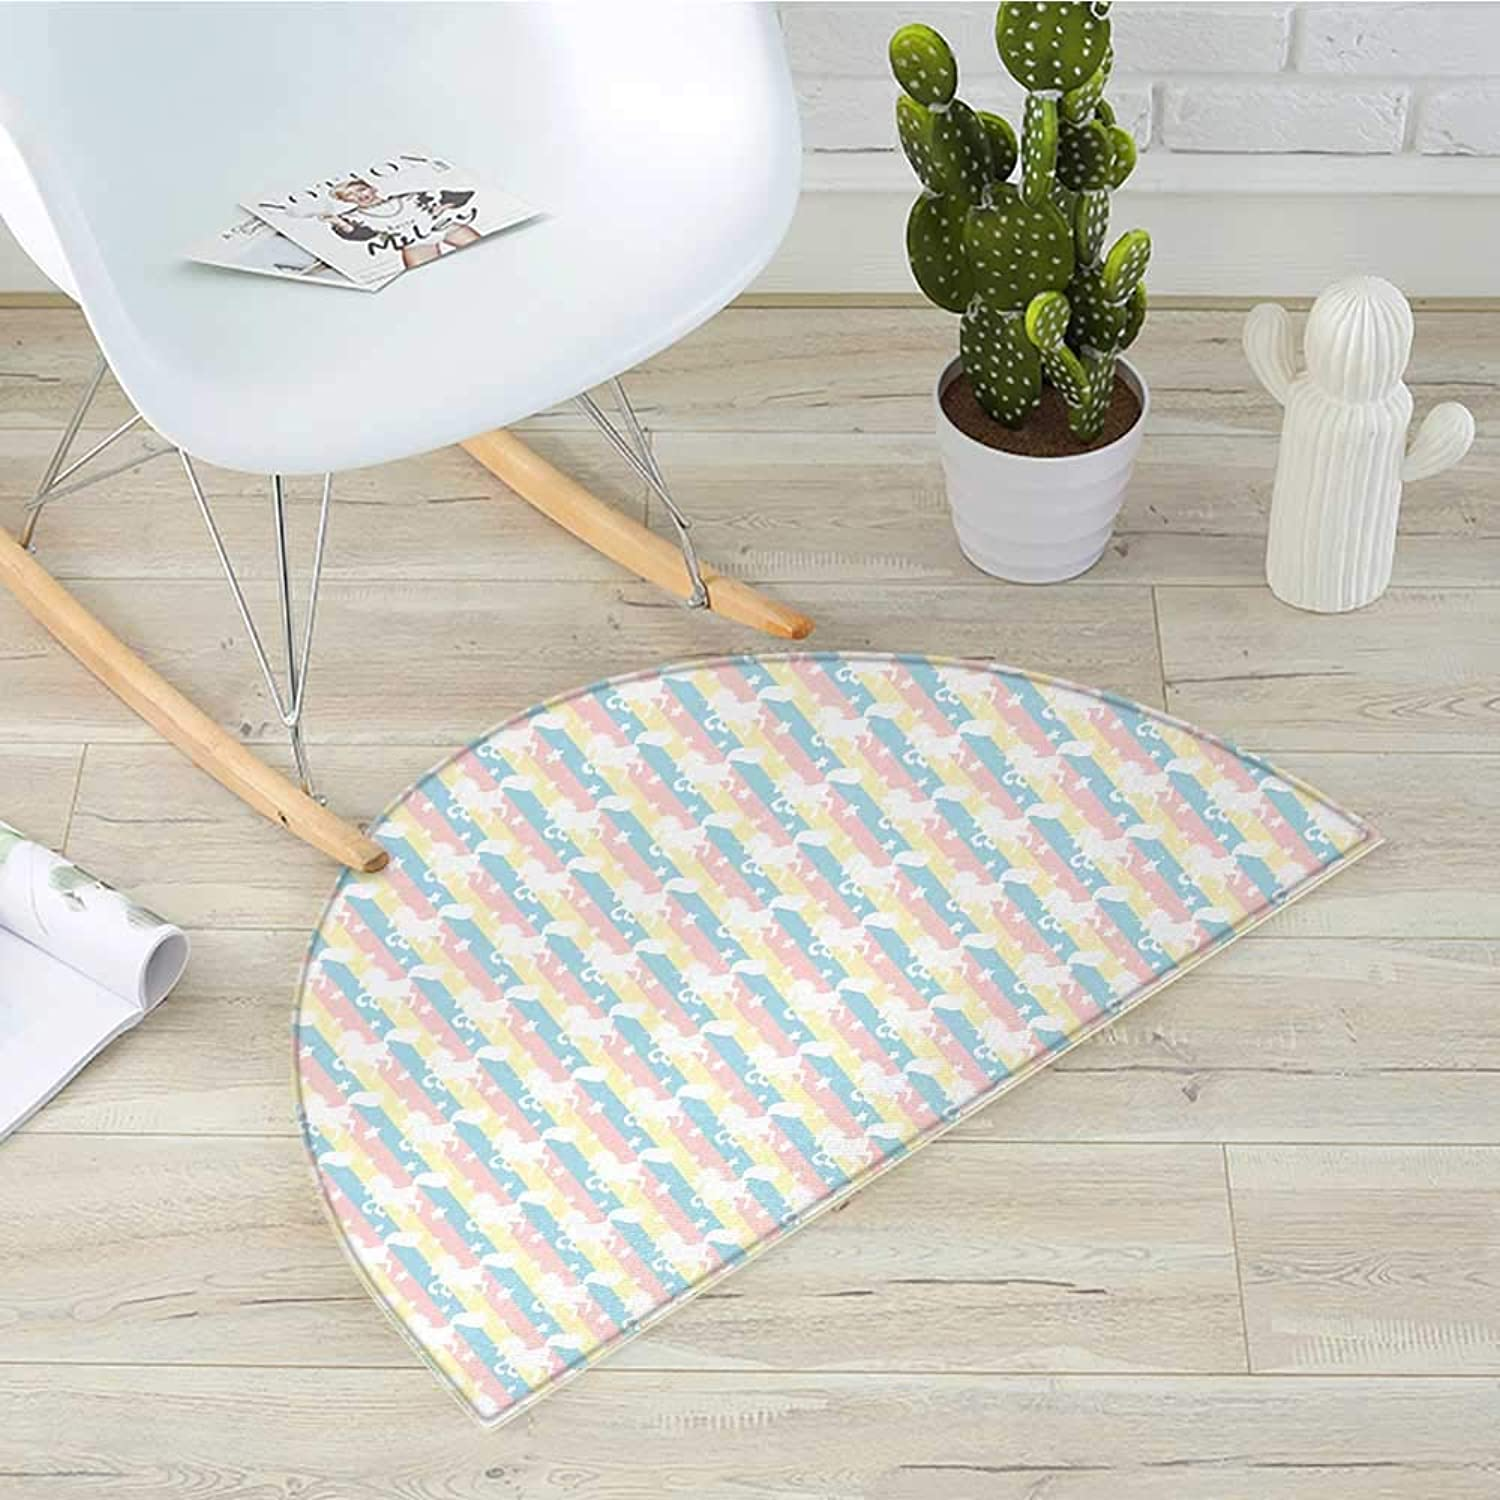 Unicorn Semicircular CushionPastel colord greenical Stripes with White Unicorn Silhouettes and Stars Fantasy Entry Door Mat H 27.5  xD 41.3  Multicolor